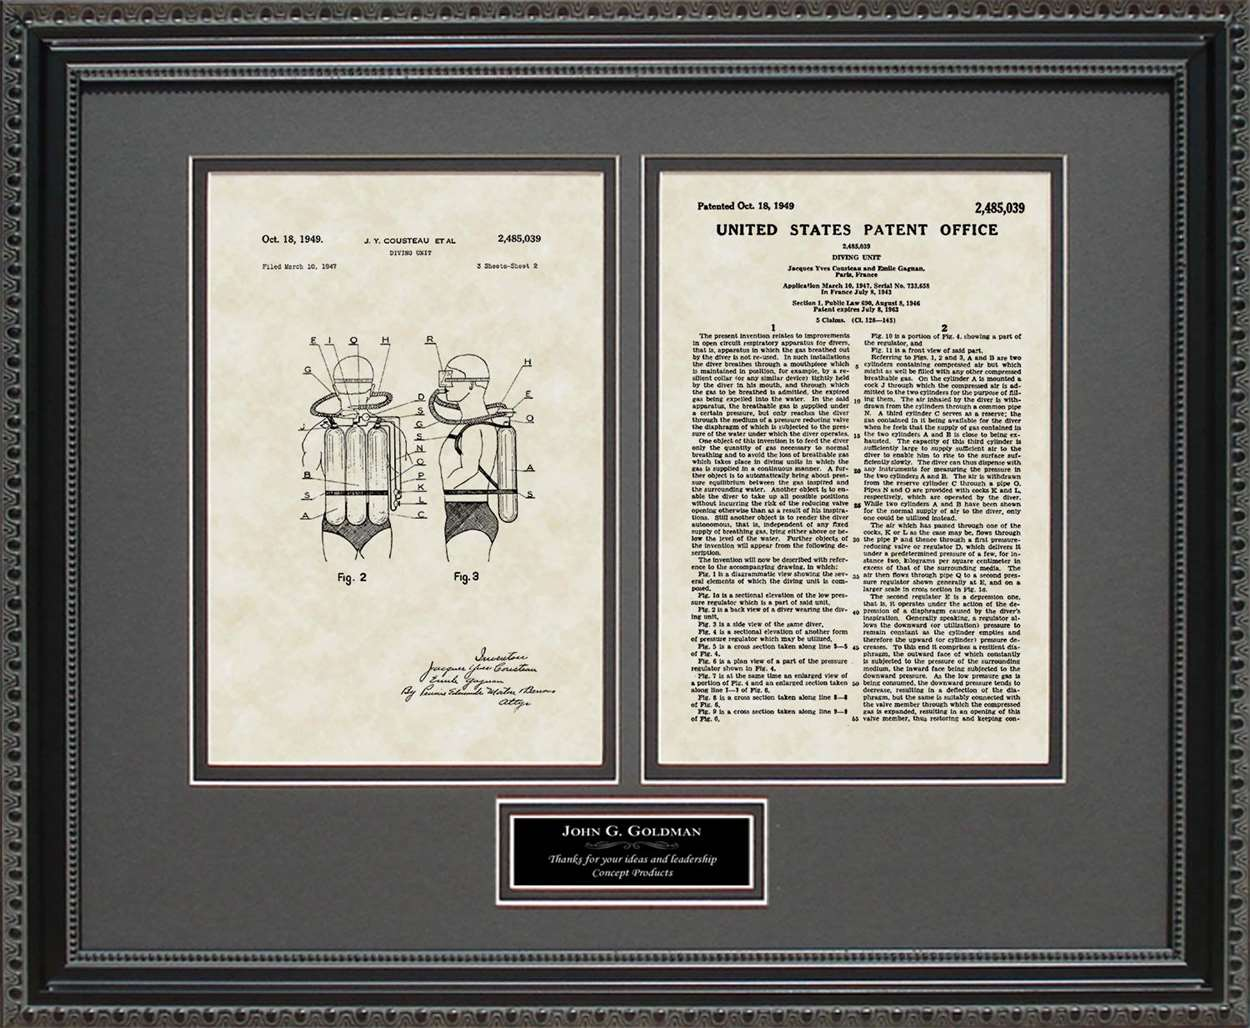 Personalized Scuba Diving Equipment Patent, Art & Copy, Cousteau, 1949